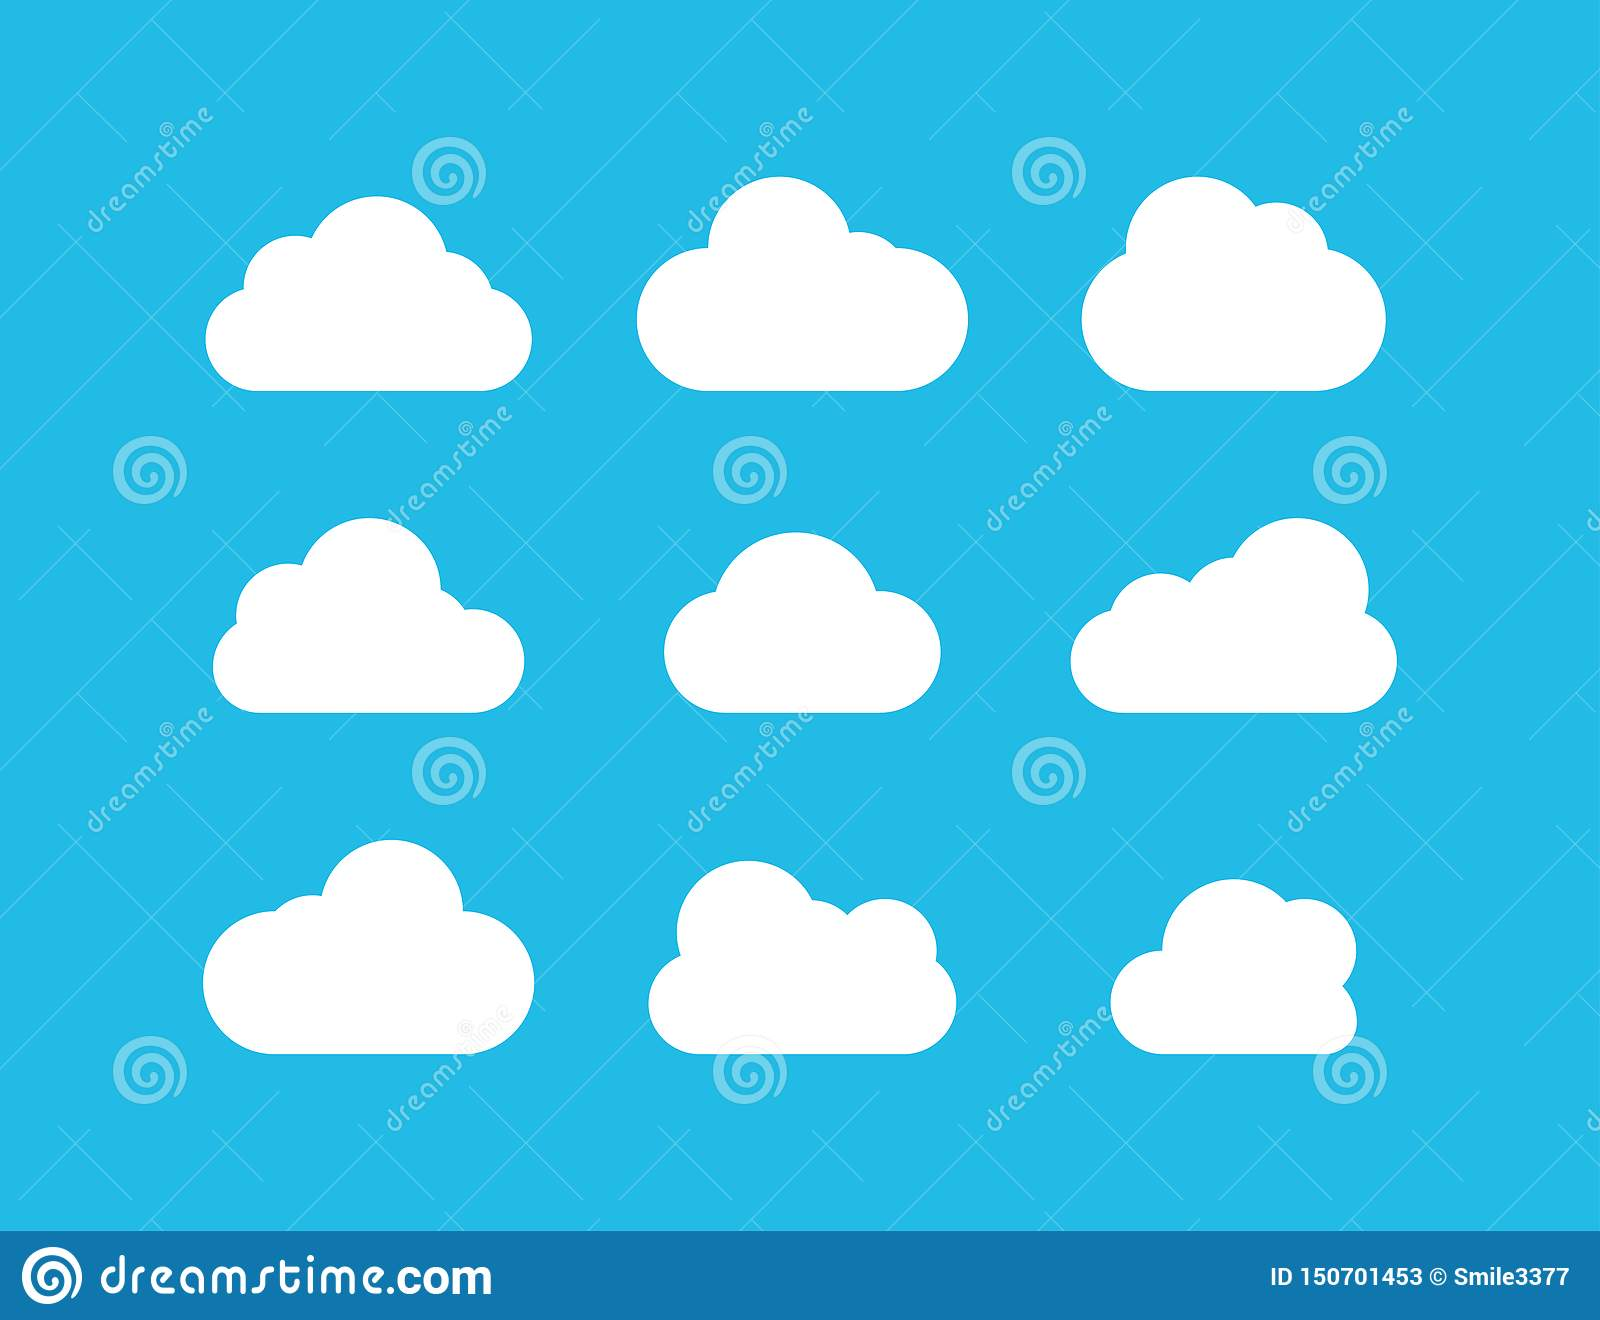 Clouds collection. White Clouds vector icons on blue background. White Cloud in flat design